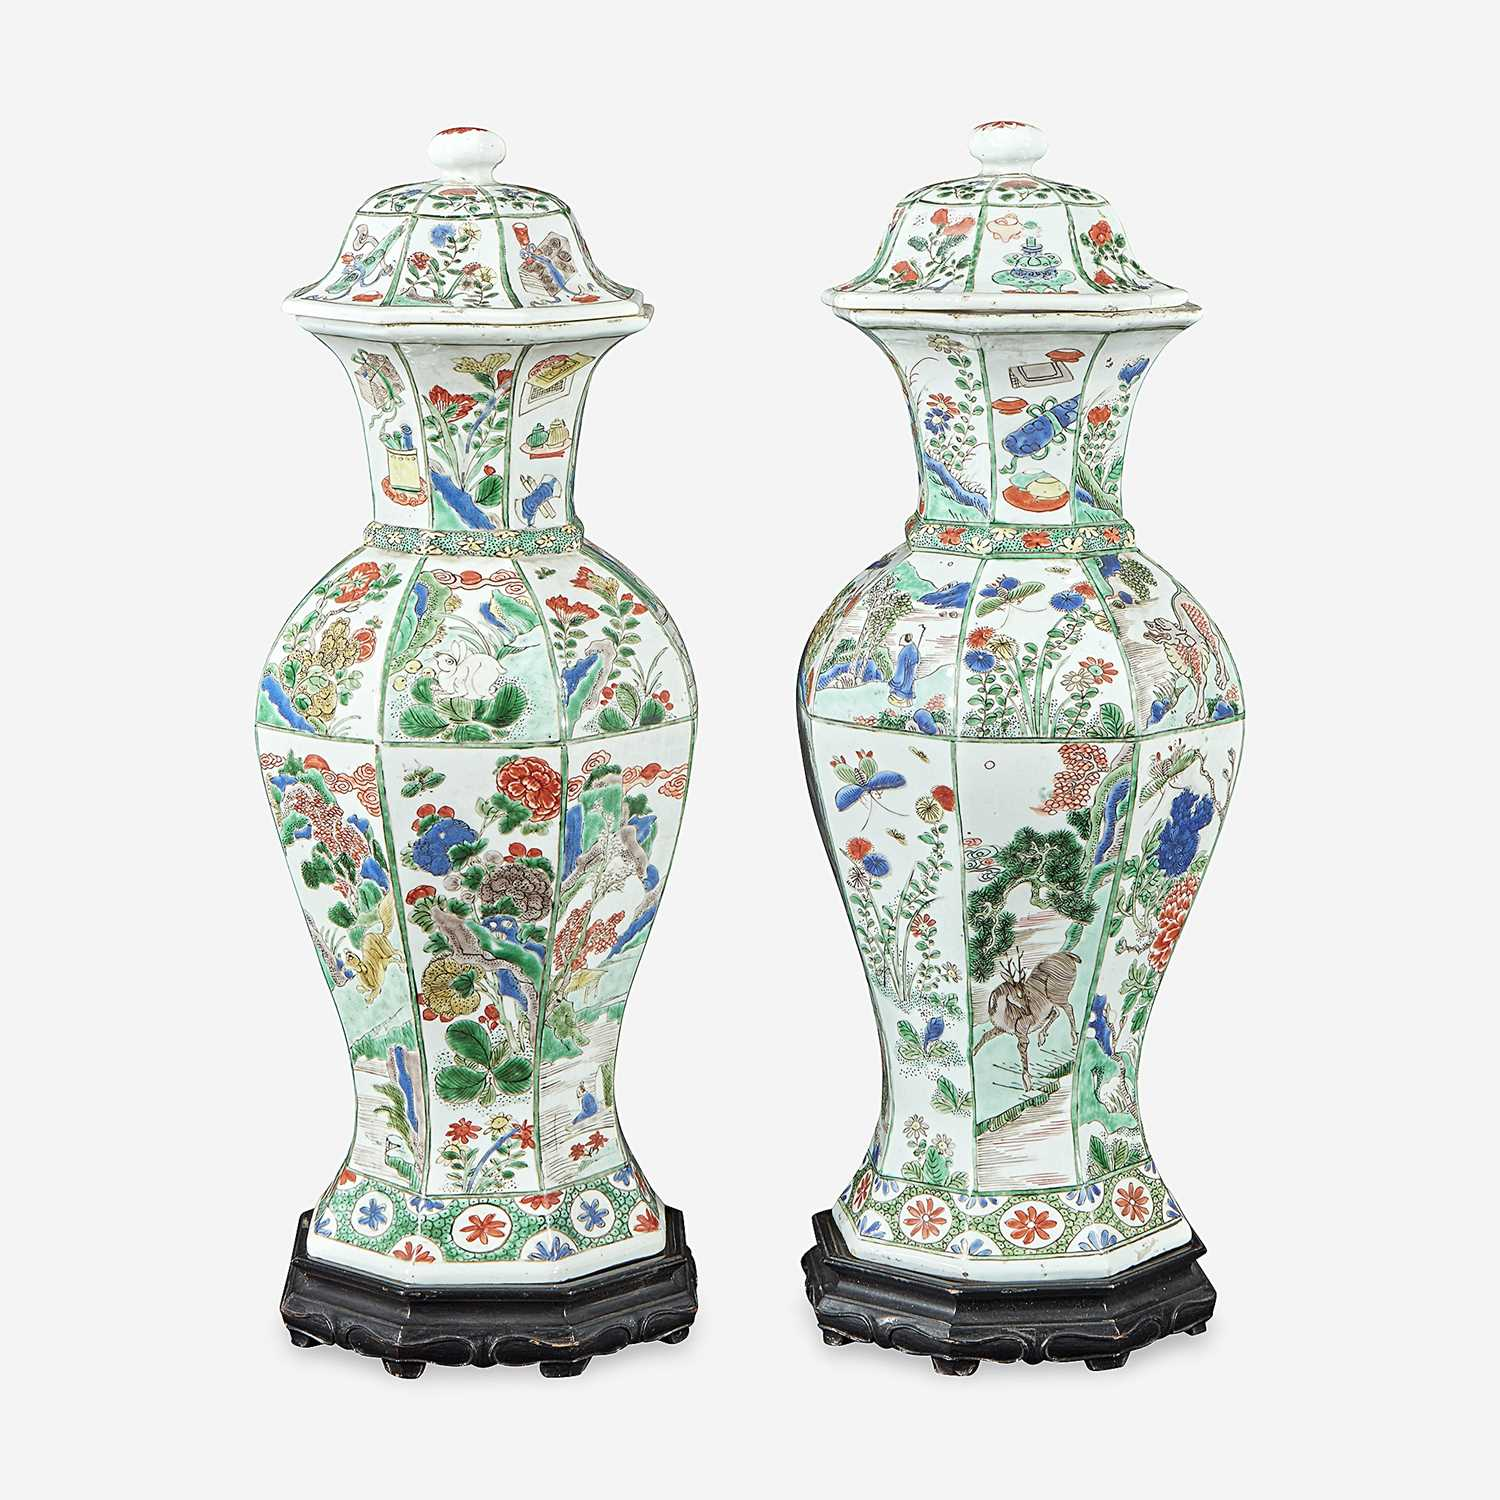 Lot 42 - A pair of Chinese famille verte-decorated octagonal baluster vases and covers